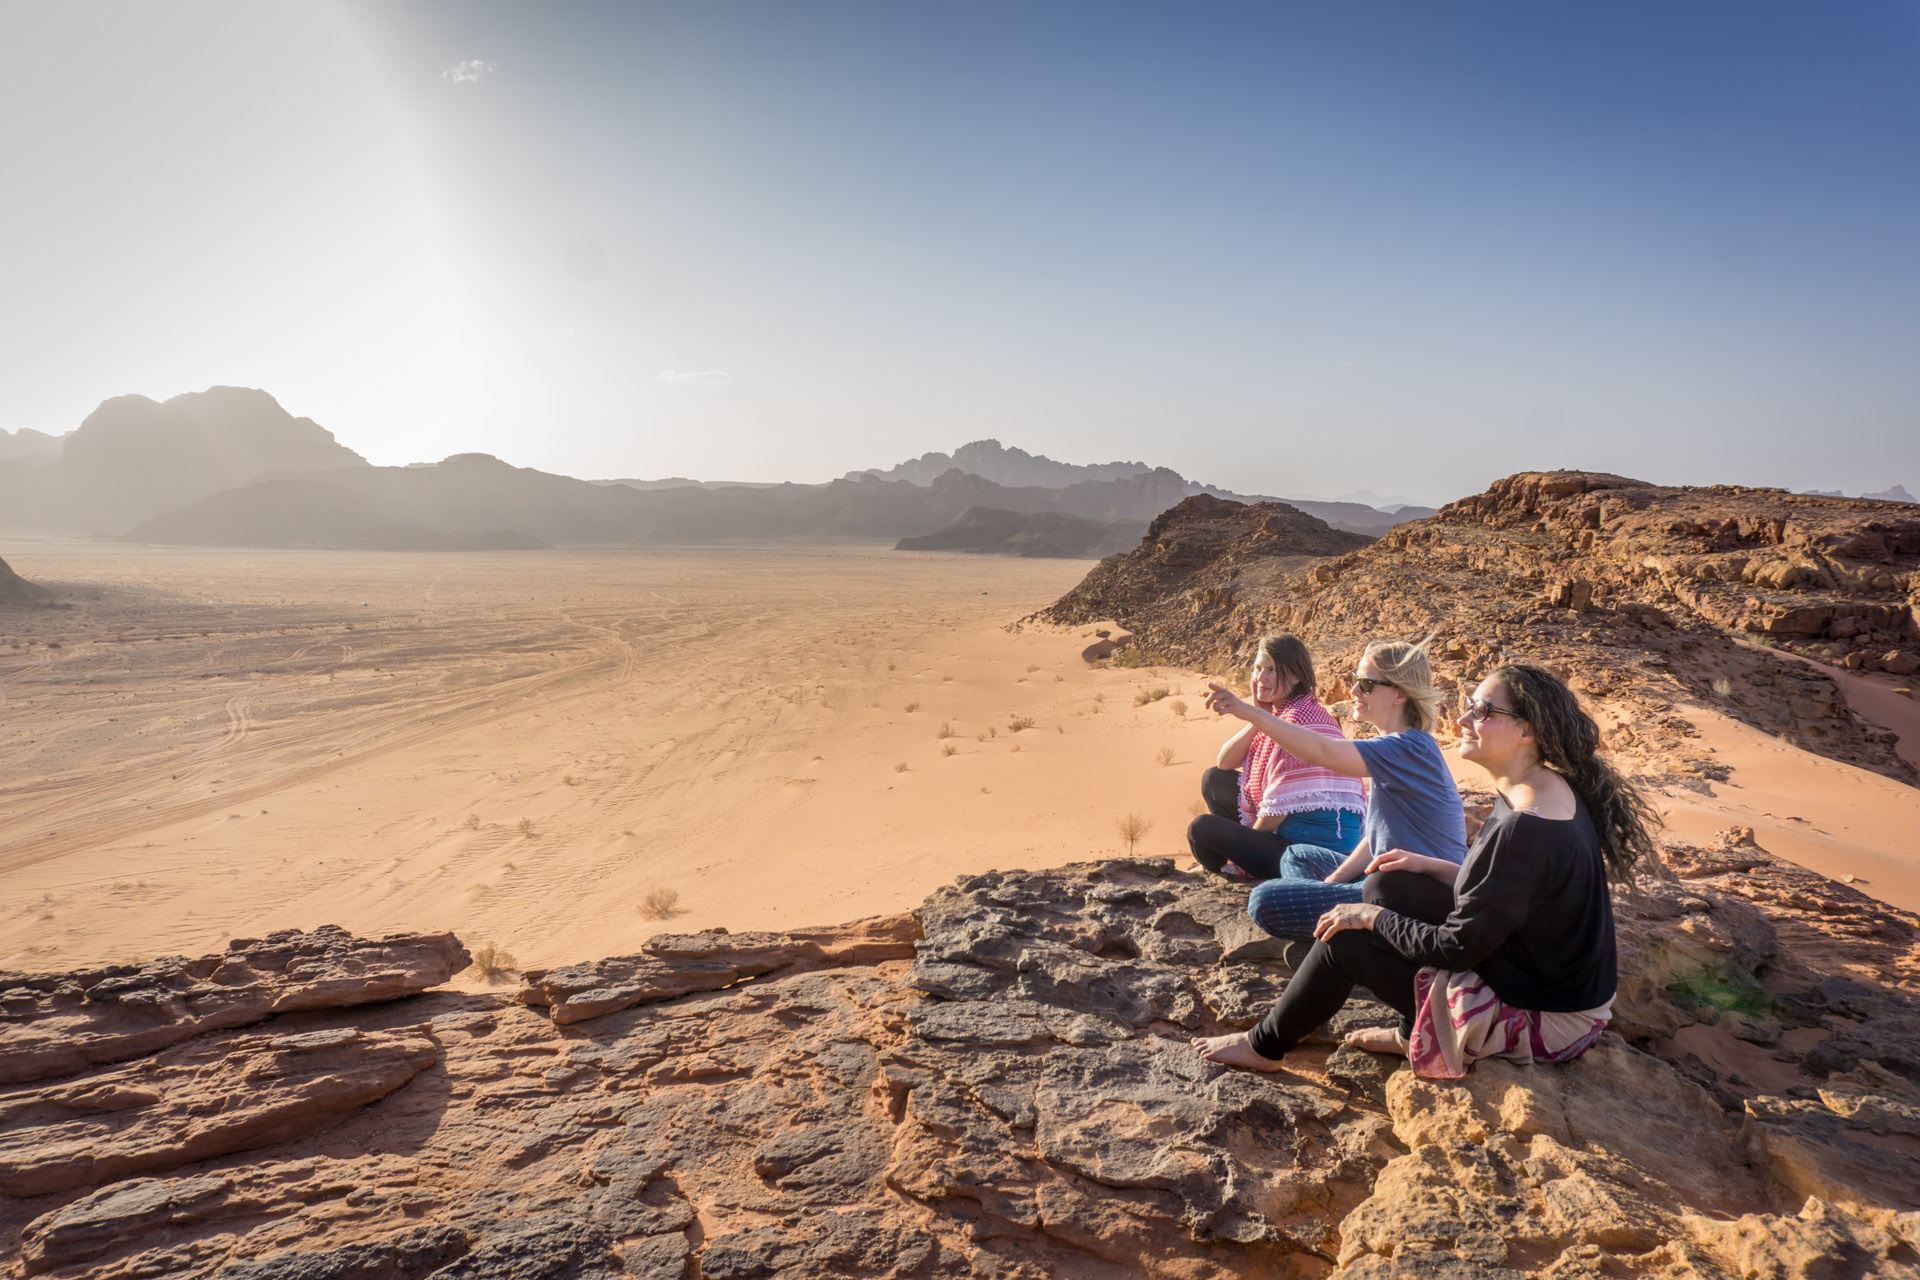 Women_hiking_in_Wadi_Rum.jpg